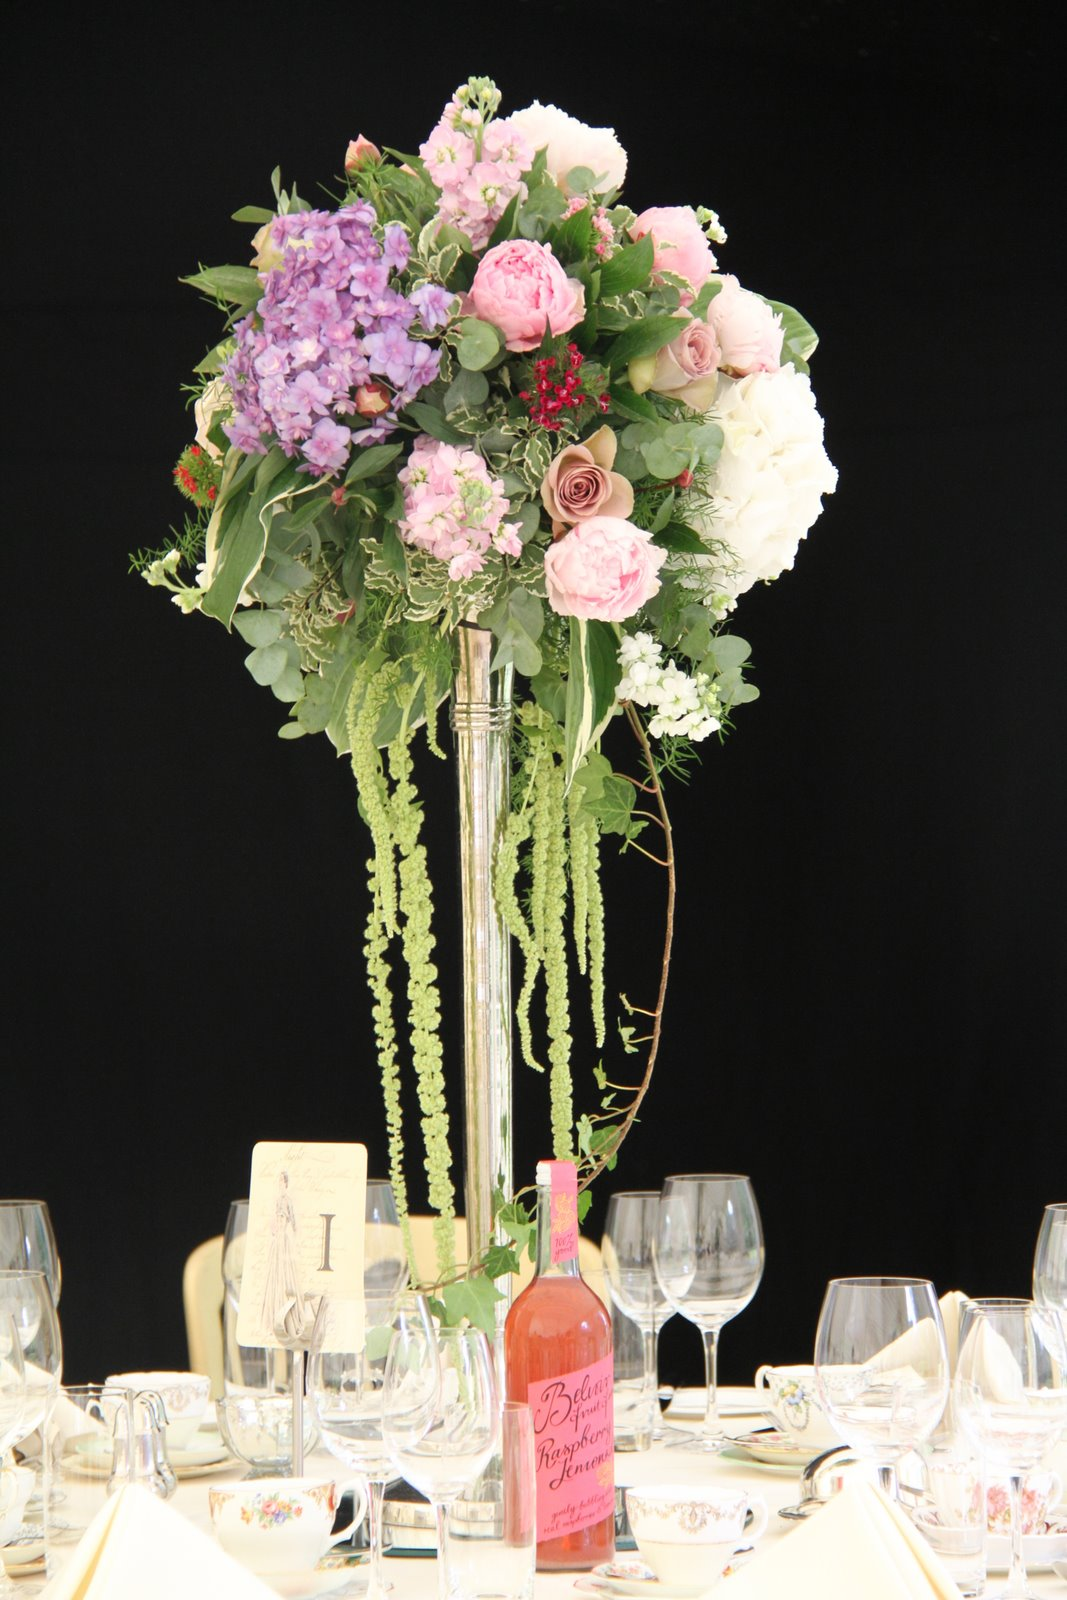 Set the scene for spring with a colorful tablescape! These stunning ideas for spring centerpieces and table decorations are sure to surprise and delight your dinner guests. Whether a fun flower arrangement in an unexpected vessel or a simple place setting, these creative crafts are .